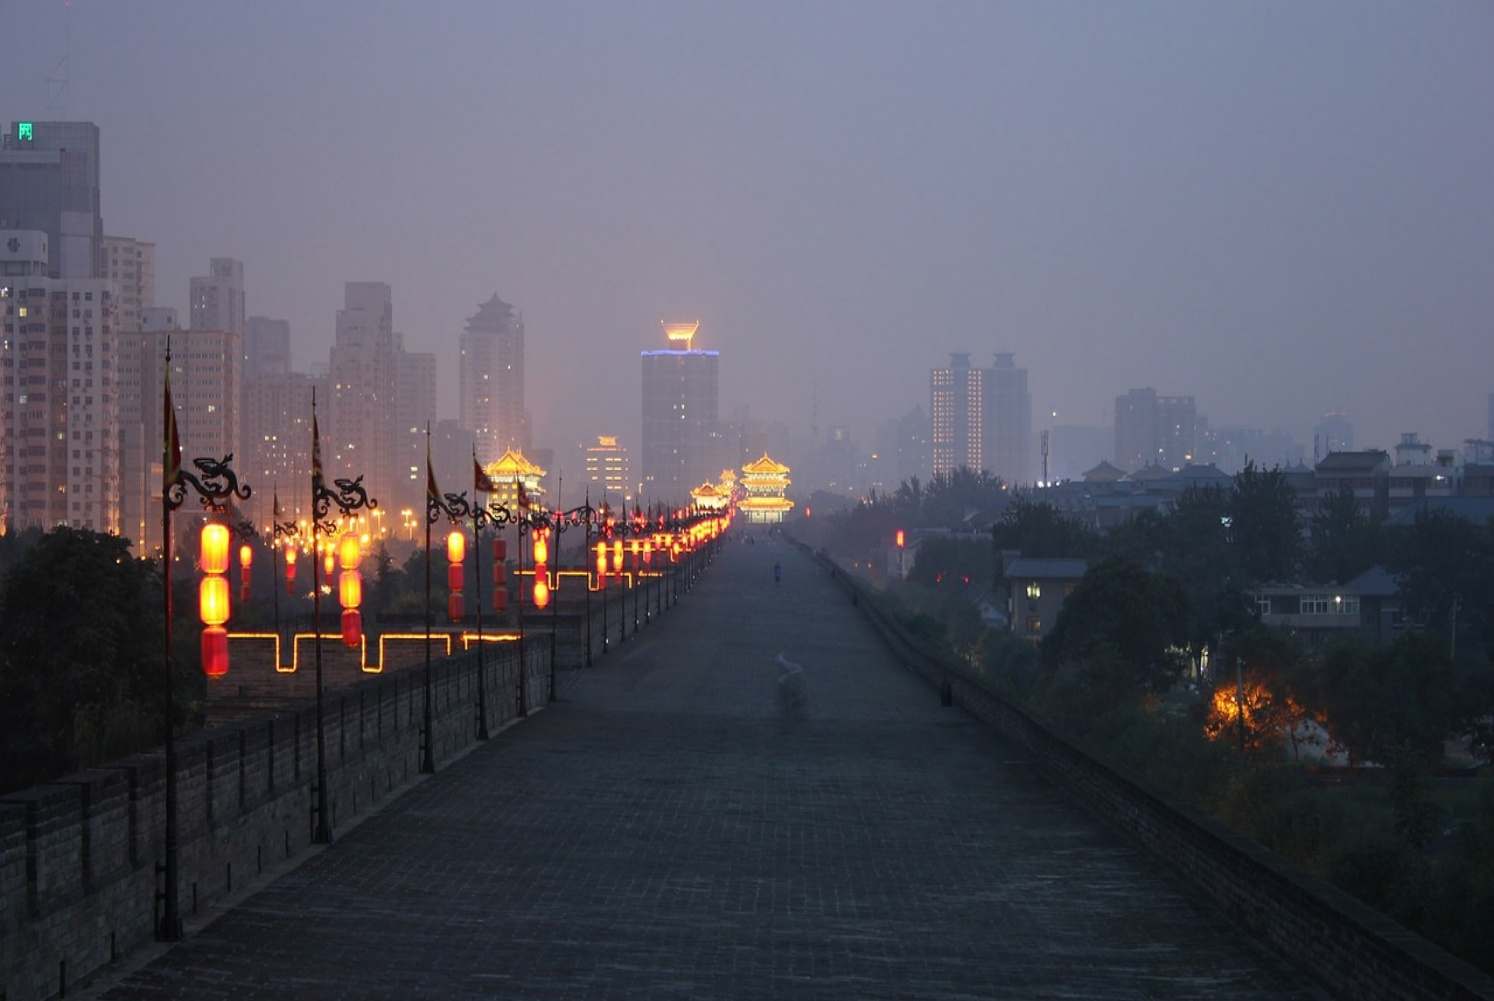 Day 11: Xi'an - Travel to this diverse ancient Capital by high-speed train. Stroll or cycle along the ancient city walls, potter around the beautiful Muslim quarter, take in the lights by night and channel your inner artist in this creative and special City.